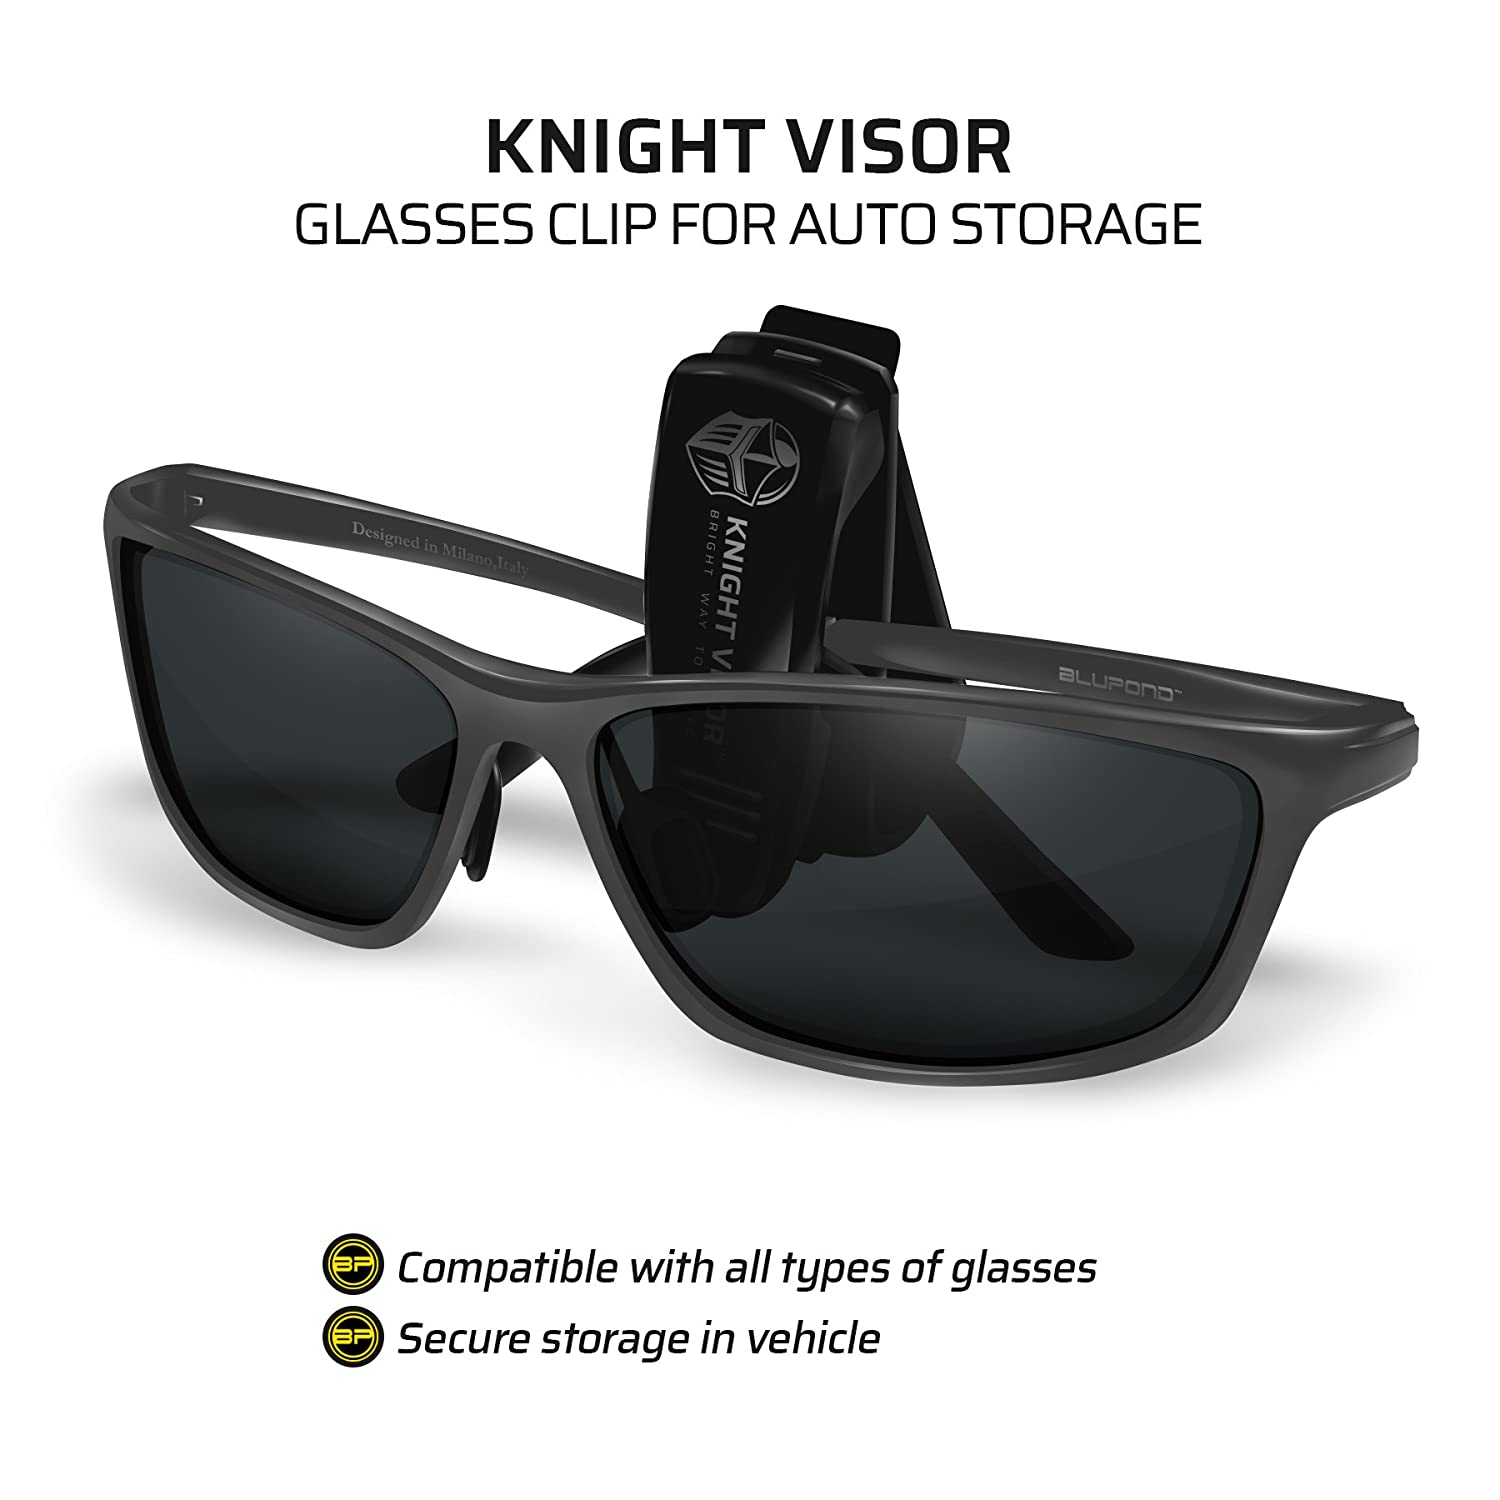 4fe1b114f0a BLUPOND Night Driving Glasses Unbreakable Metal Frame with Car Clip Holder  Knight Visor Semi Polarized Yellow Tint HD Vision Anti Glare Lens